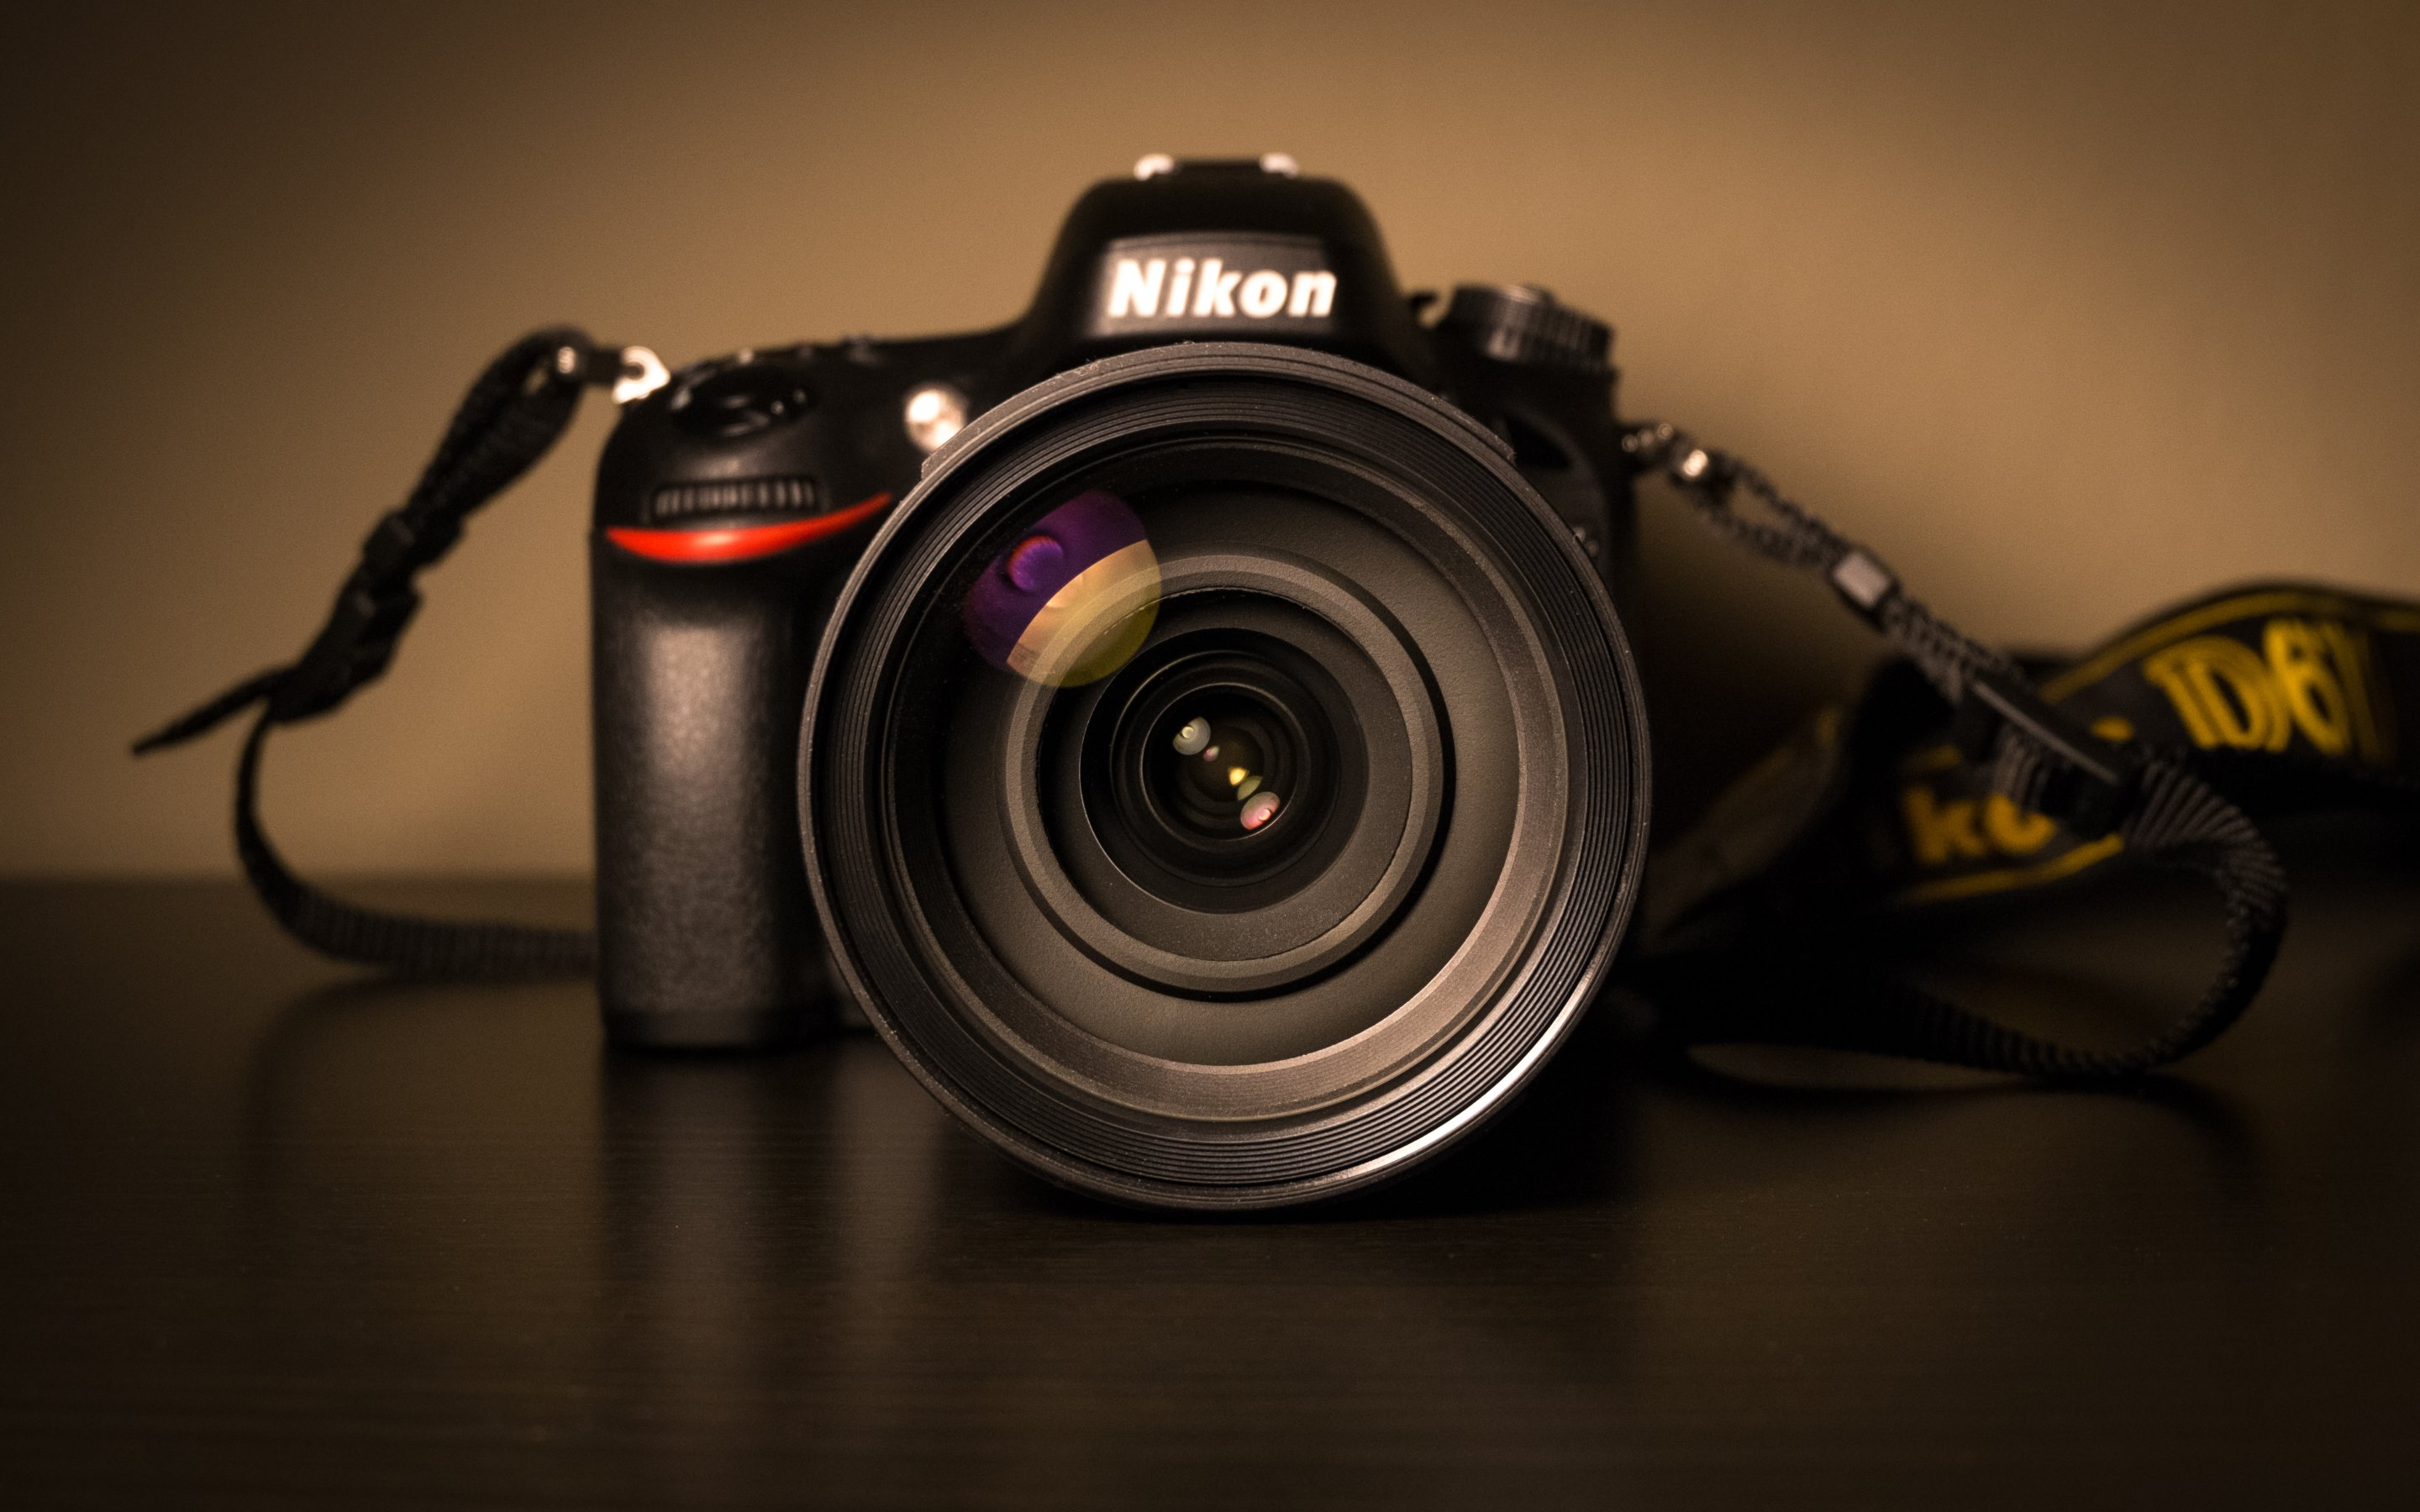 Points to Keep in Mind While Buying a DSLR Camera